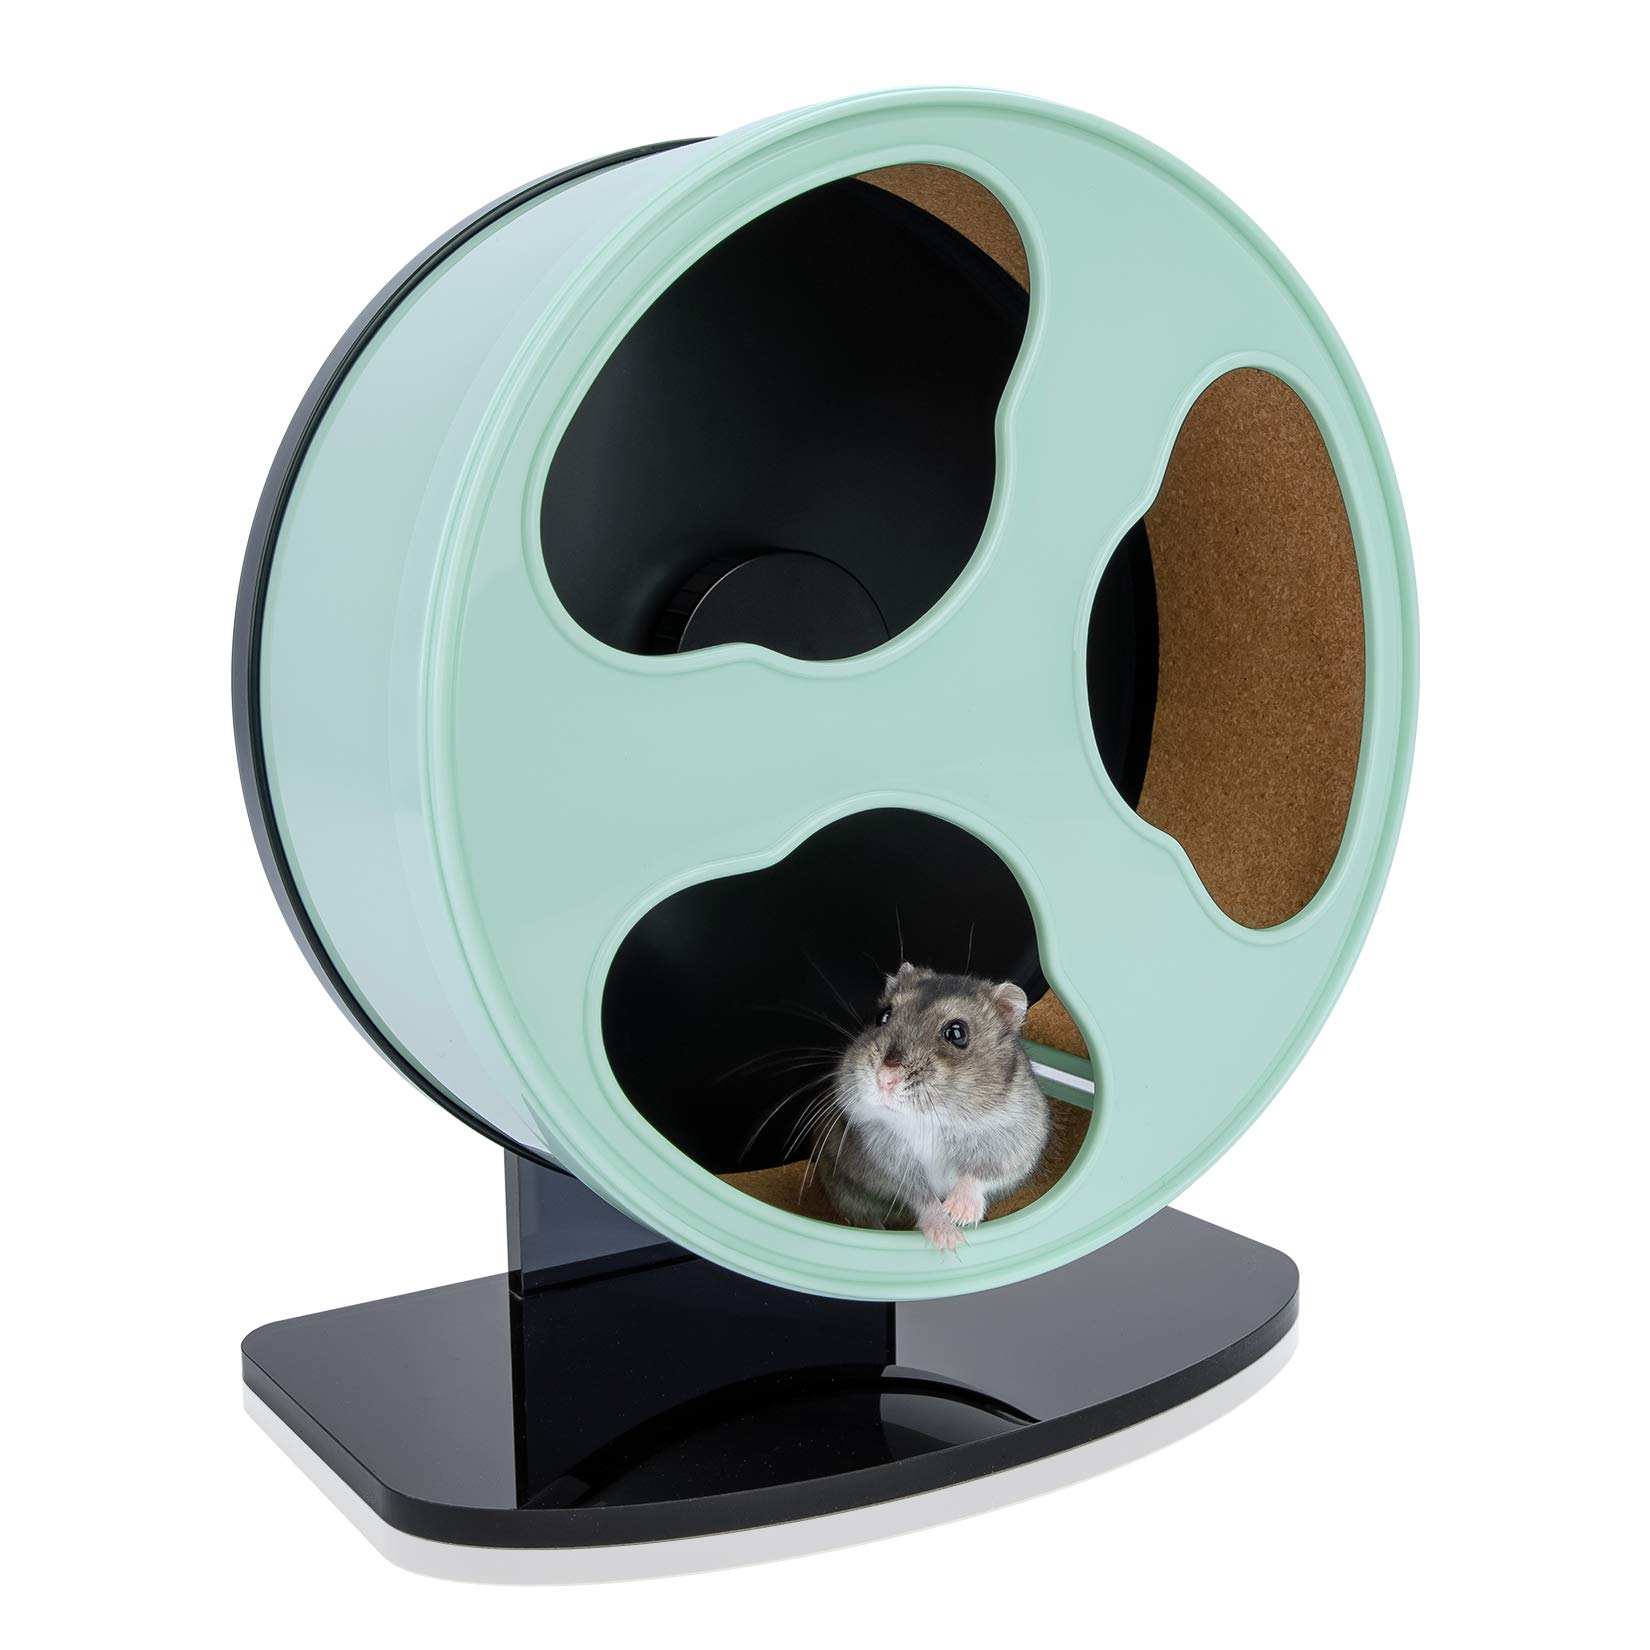 Niteangel Quiet Hamster Exercise Wheel - Dark Clouds Series Hamster Running Wheels for Dwarf Syrian Hamsters Gerbils Mice or Other Small Sized Pets